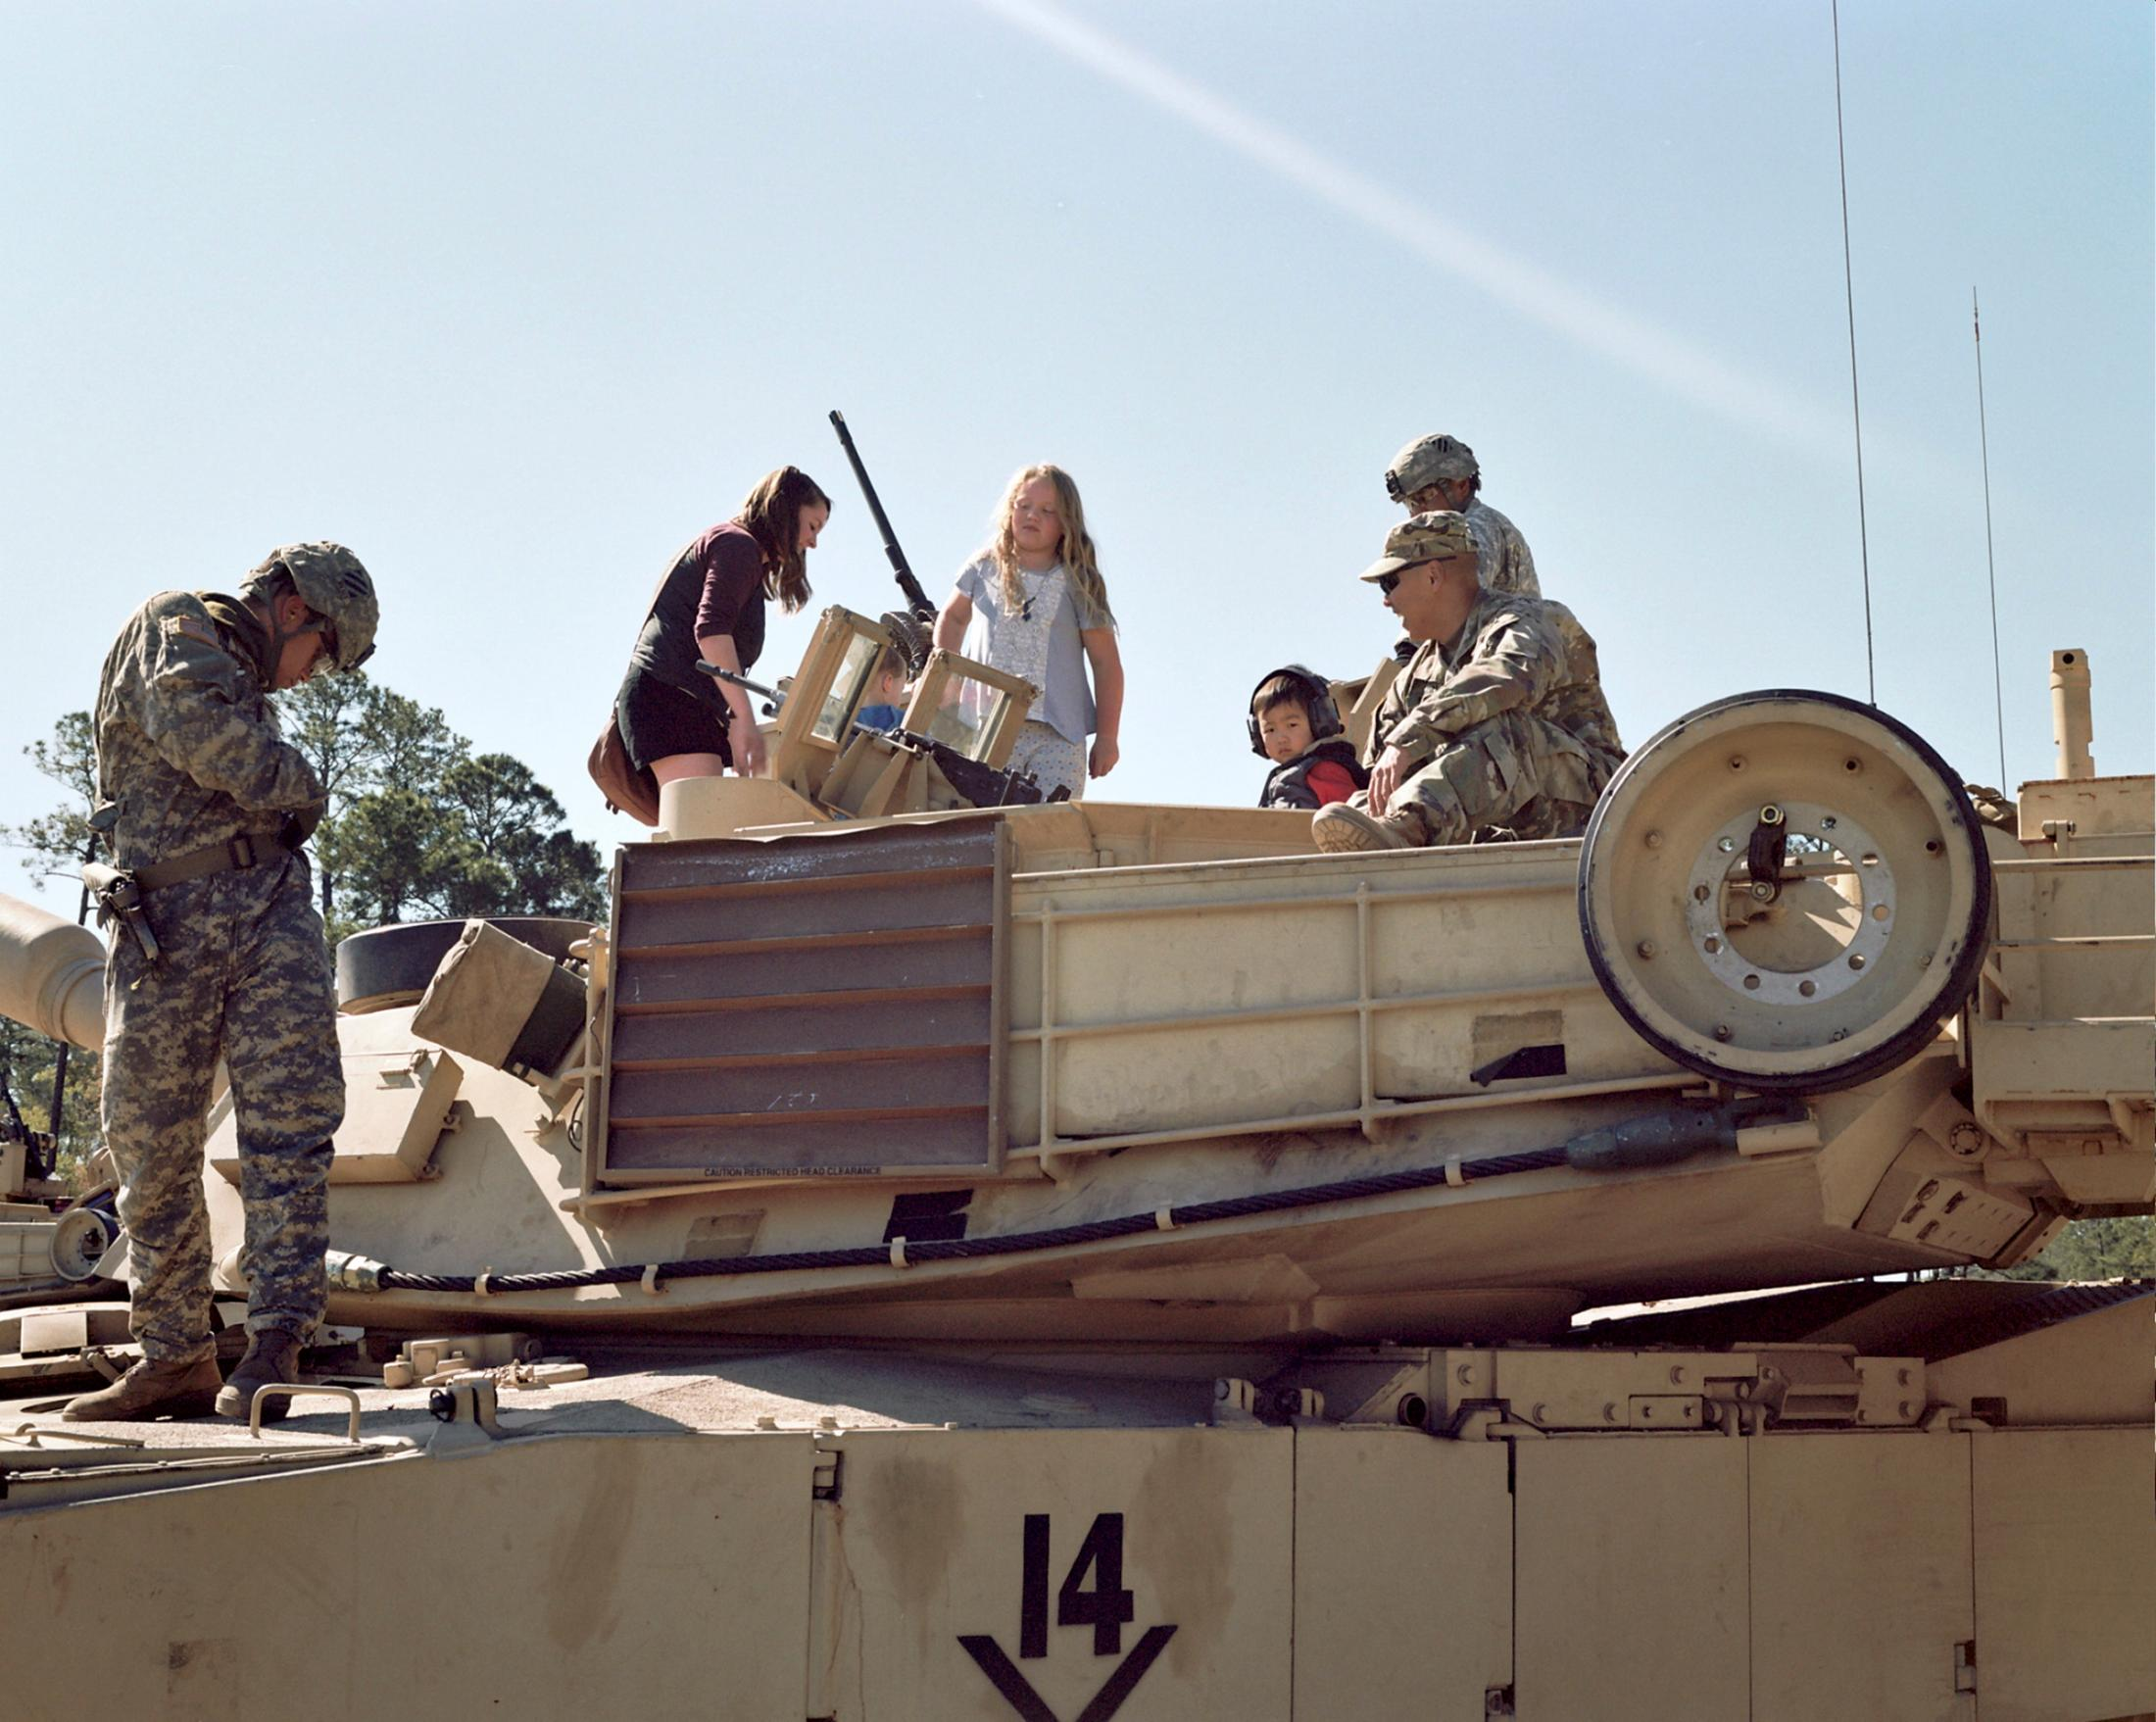 Military families move to new installations every two or three years. Often, spouses raise children alone during deployments. Here, military children climb onto a battle tank on Family Range Day in Fort Stewart, Georgia. PHOTOGRAPH BY ARIN YOON